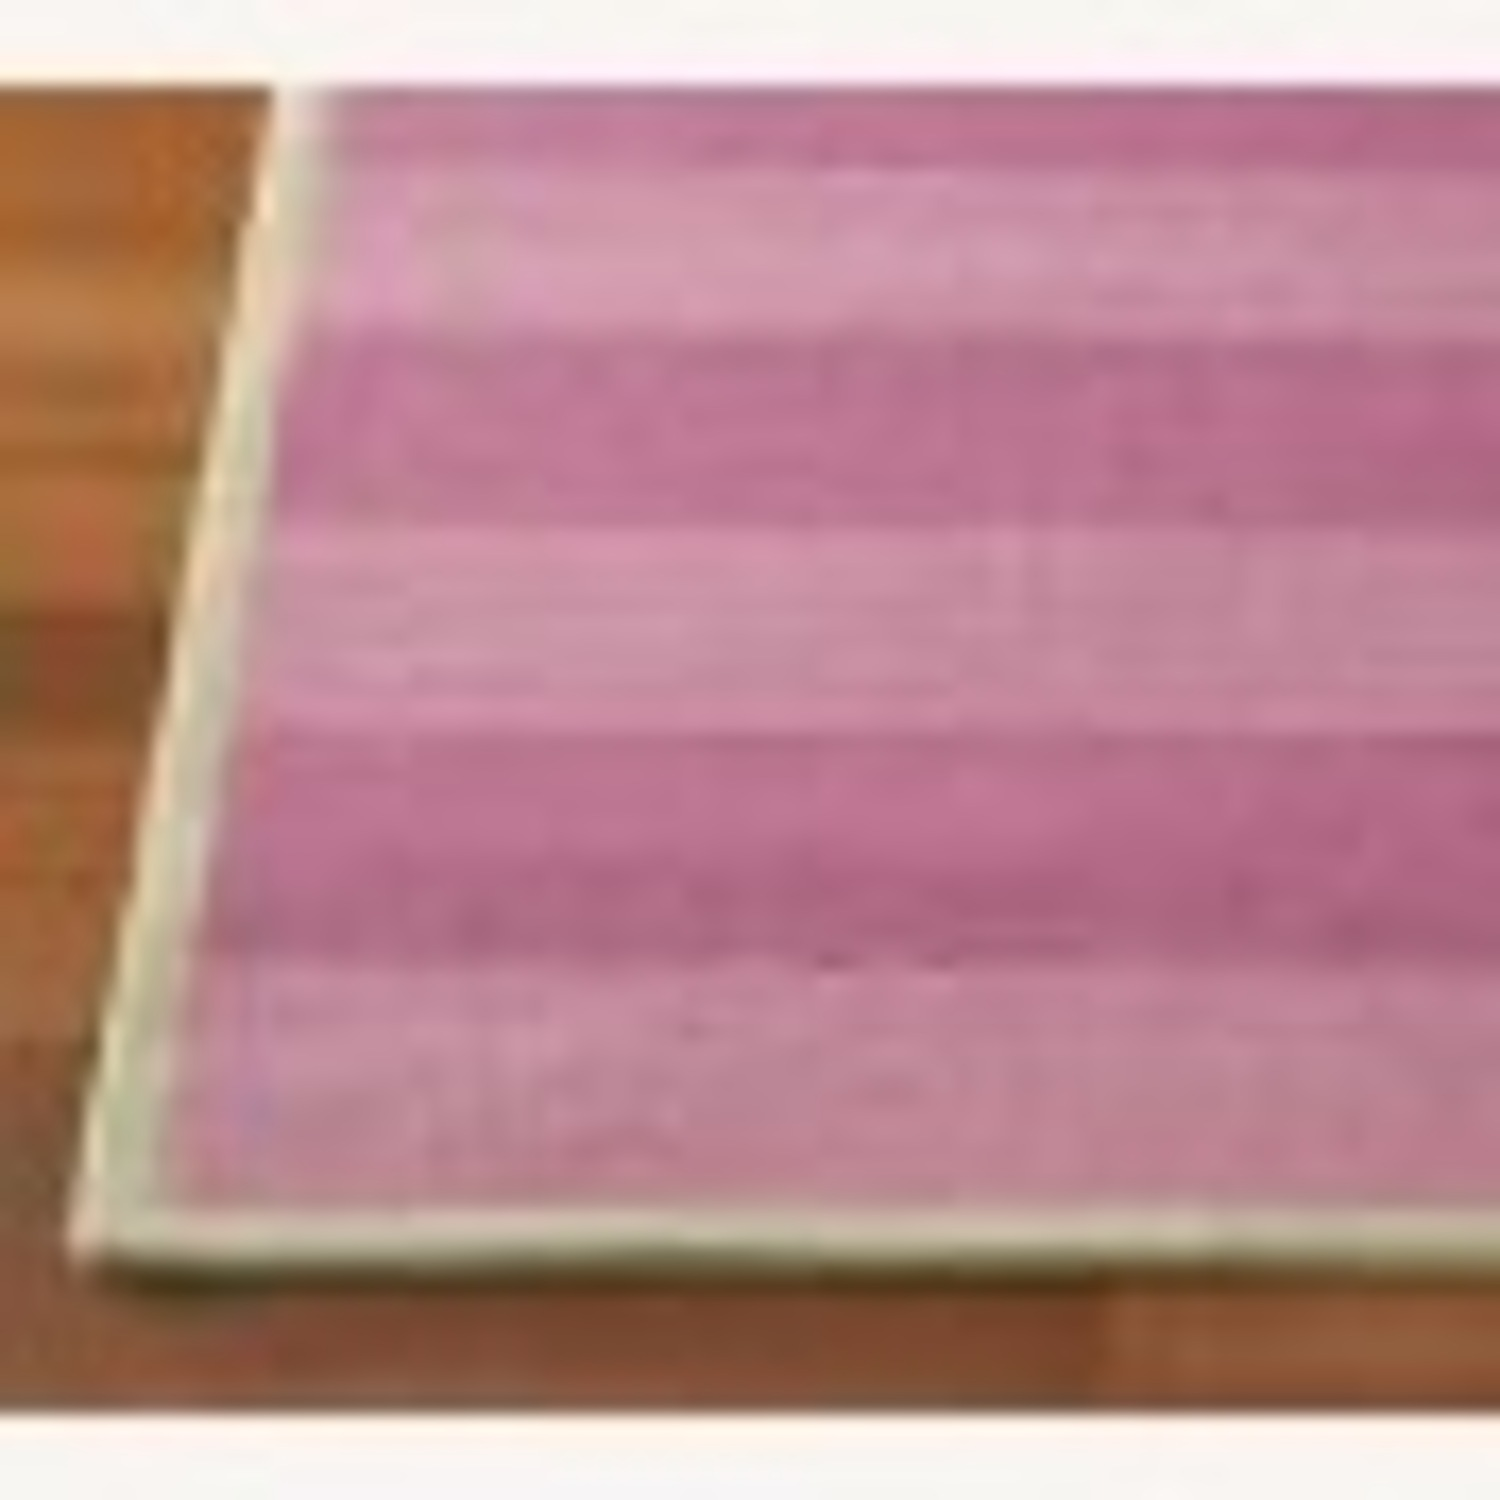 Pottery Barn Kids Pink and Green Striped Rug - image-1